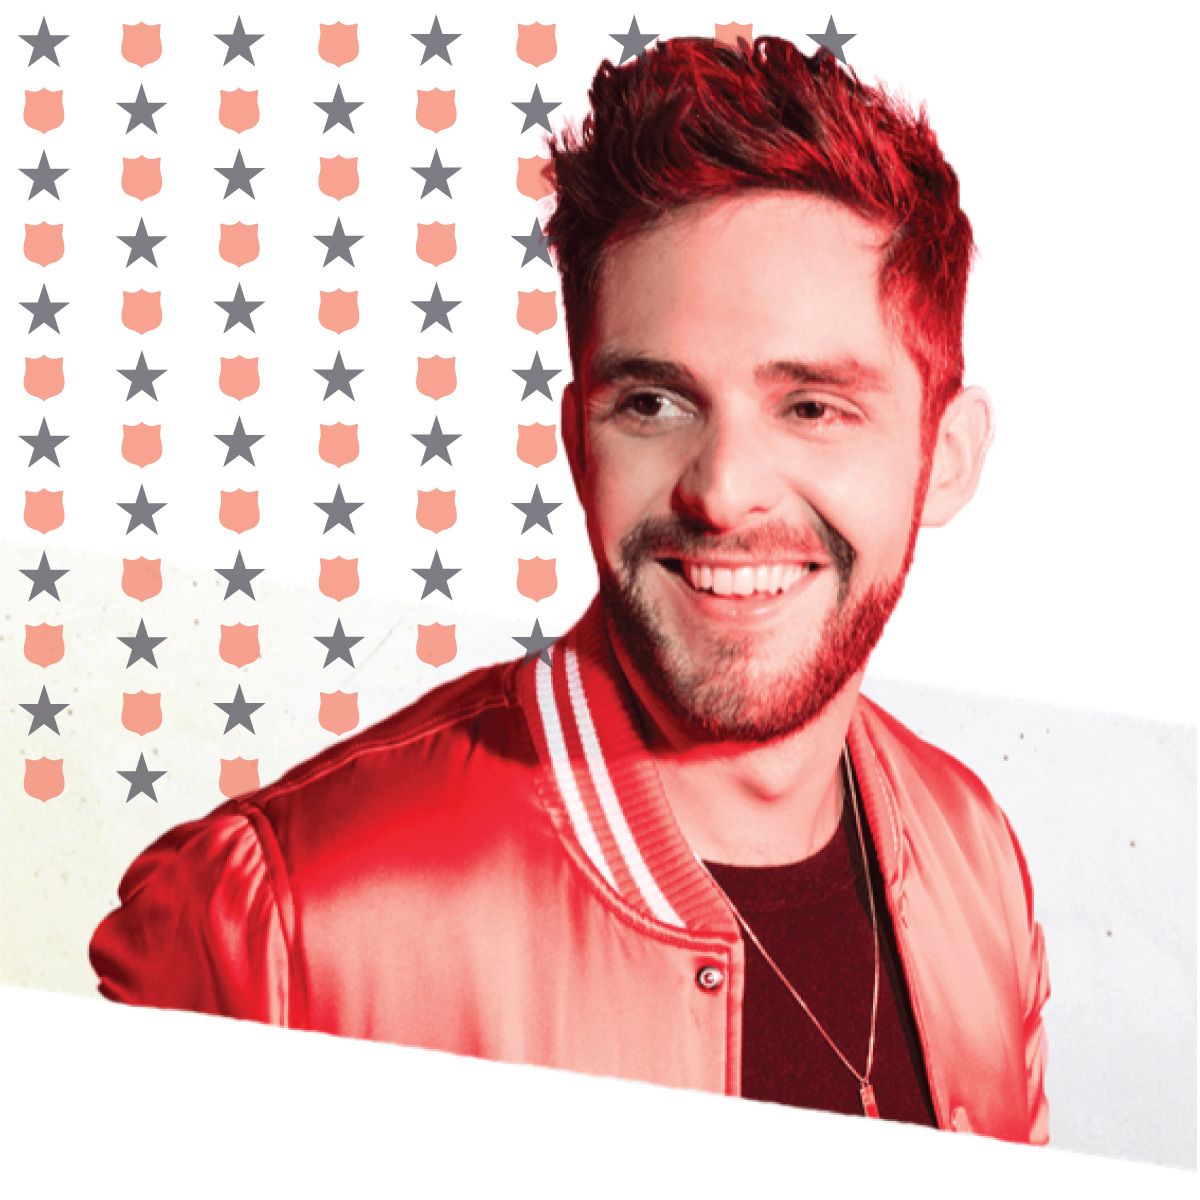 Academy of Country Music's Male Vocalist of the Year Thomas Rhett